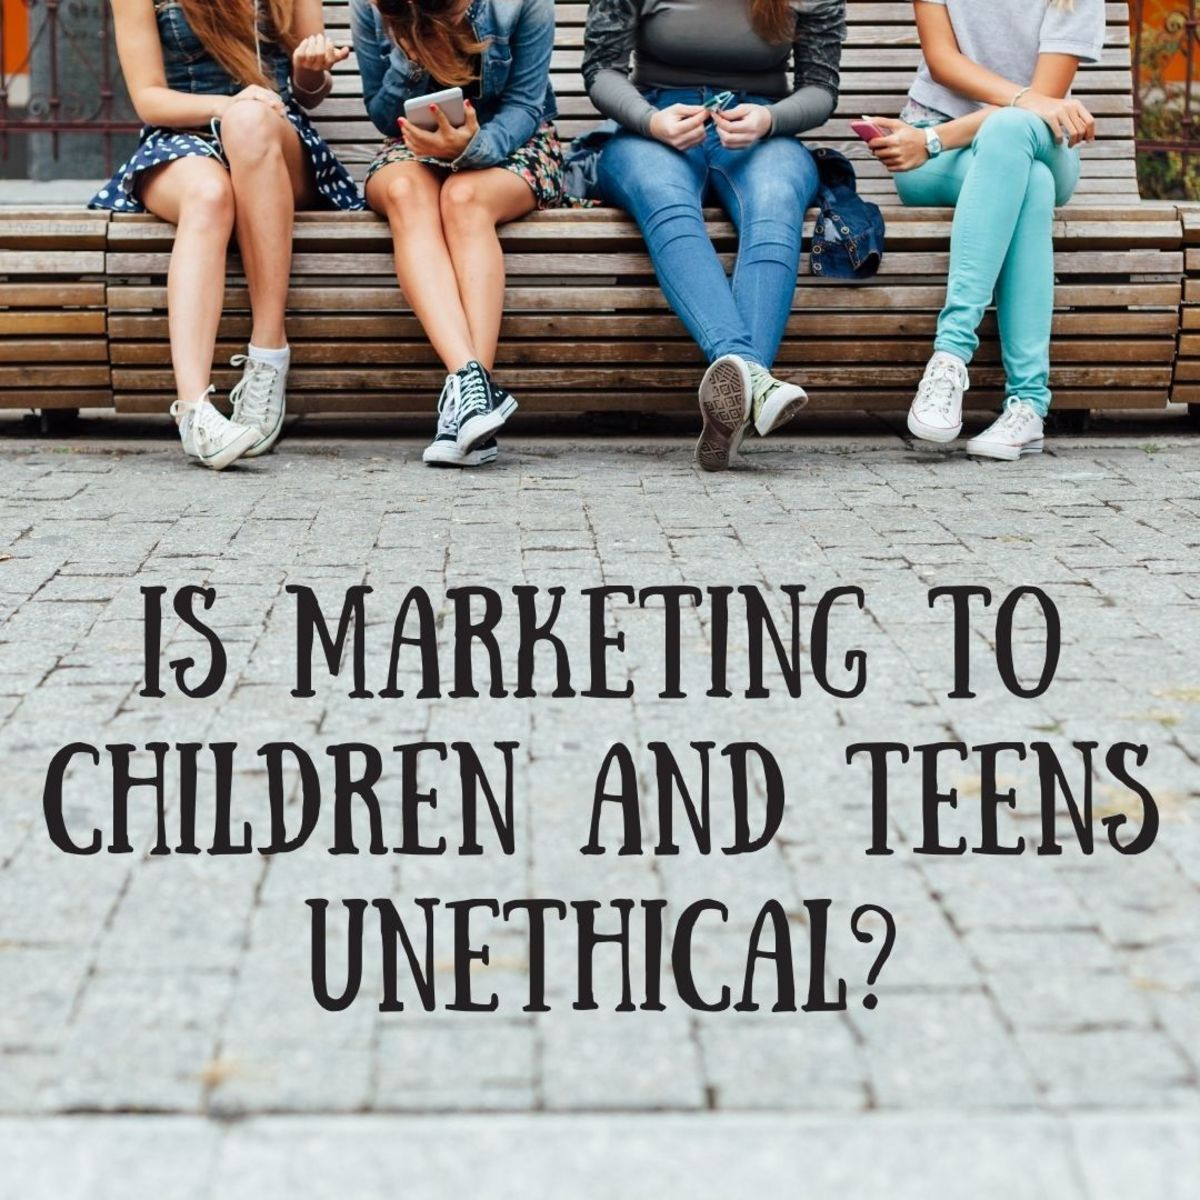 Is Marketing to Teens, Children, and Even Babies Ethical?